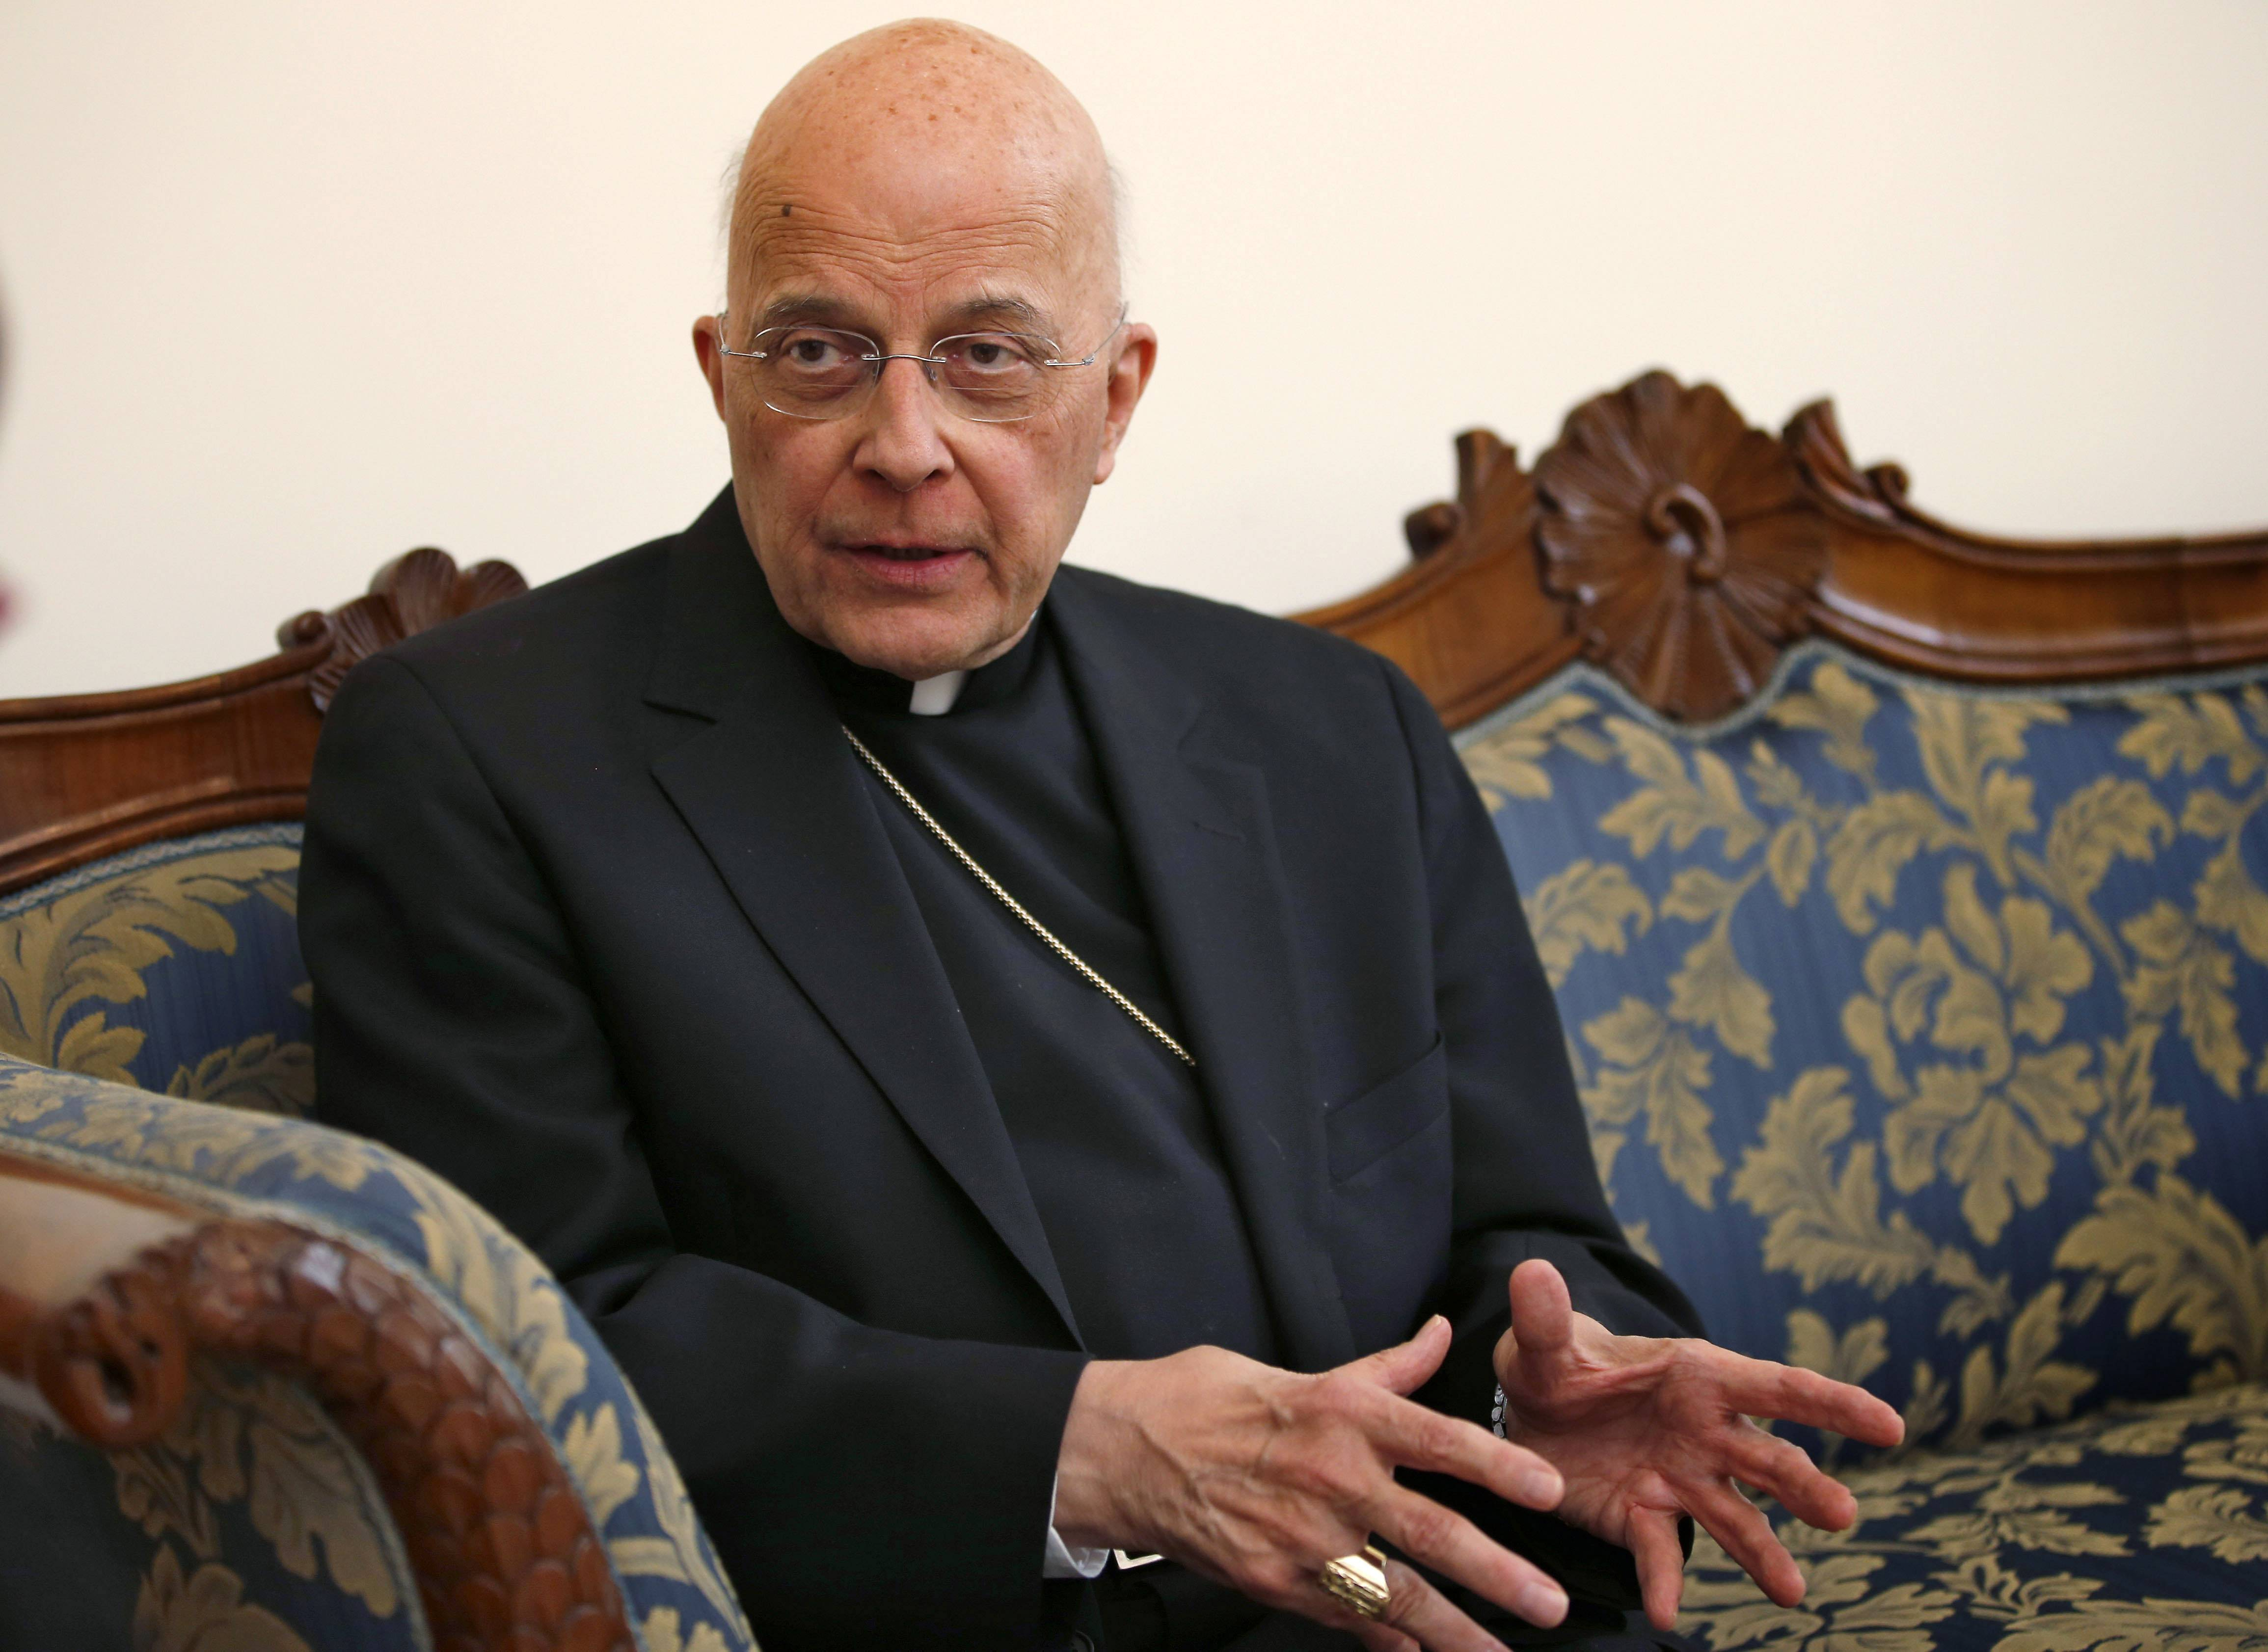 In this 2013 file photo, Cardinal Francis George speaks during an interview at the North American College in Rome. The Archdiocese of Chicago says George will not travel to Rome in October 2014 to meet with Pope Francis. Spokeswoman Colleen Dolan says the archbishop of Chicago had hoped to make that trip in mid-October but will not be able to because of medical treatment. She says the trip may be rescheduled.